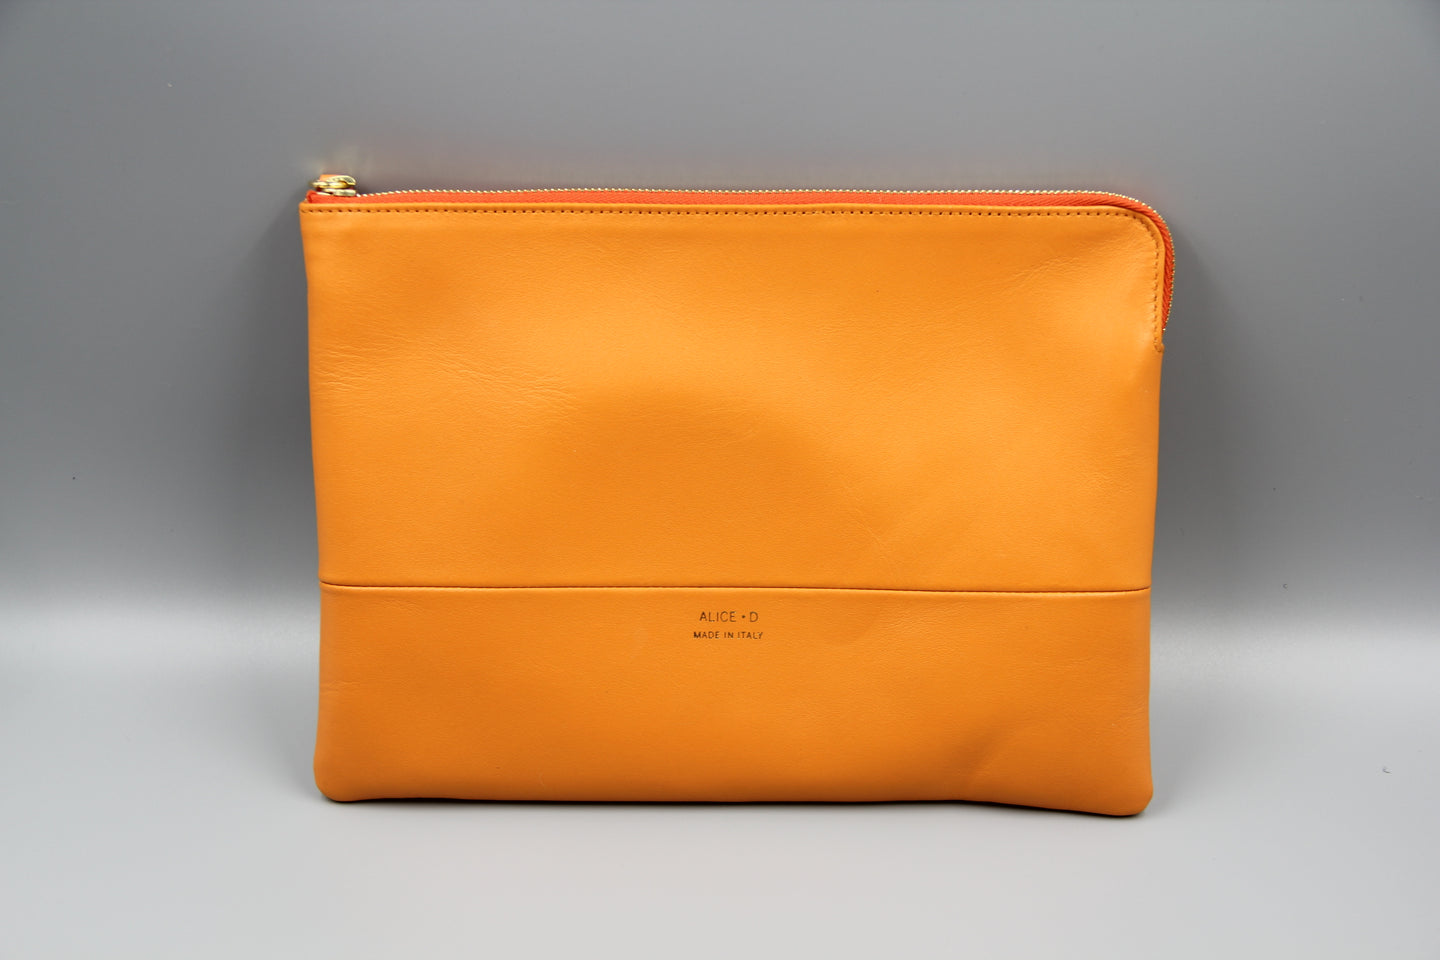 Designer Alice D tang leather clutch pochette en cuir orange